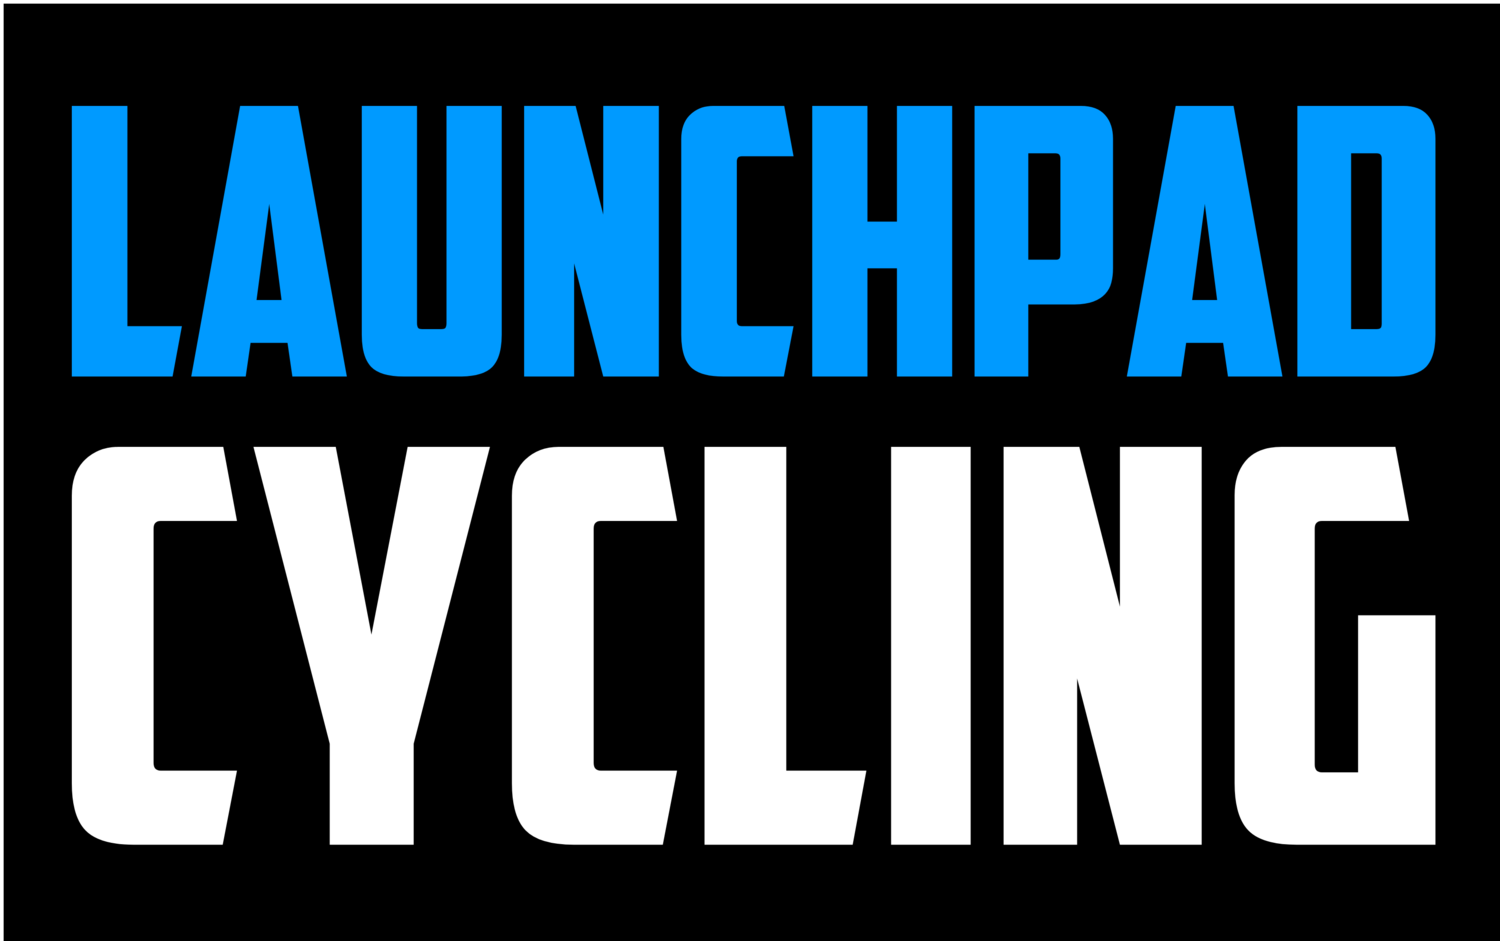 TEAM Gerard - LAUNCHPAD CYCLING